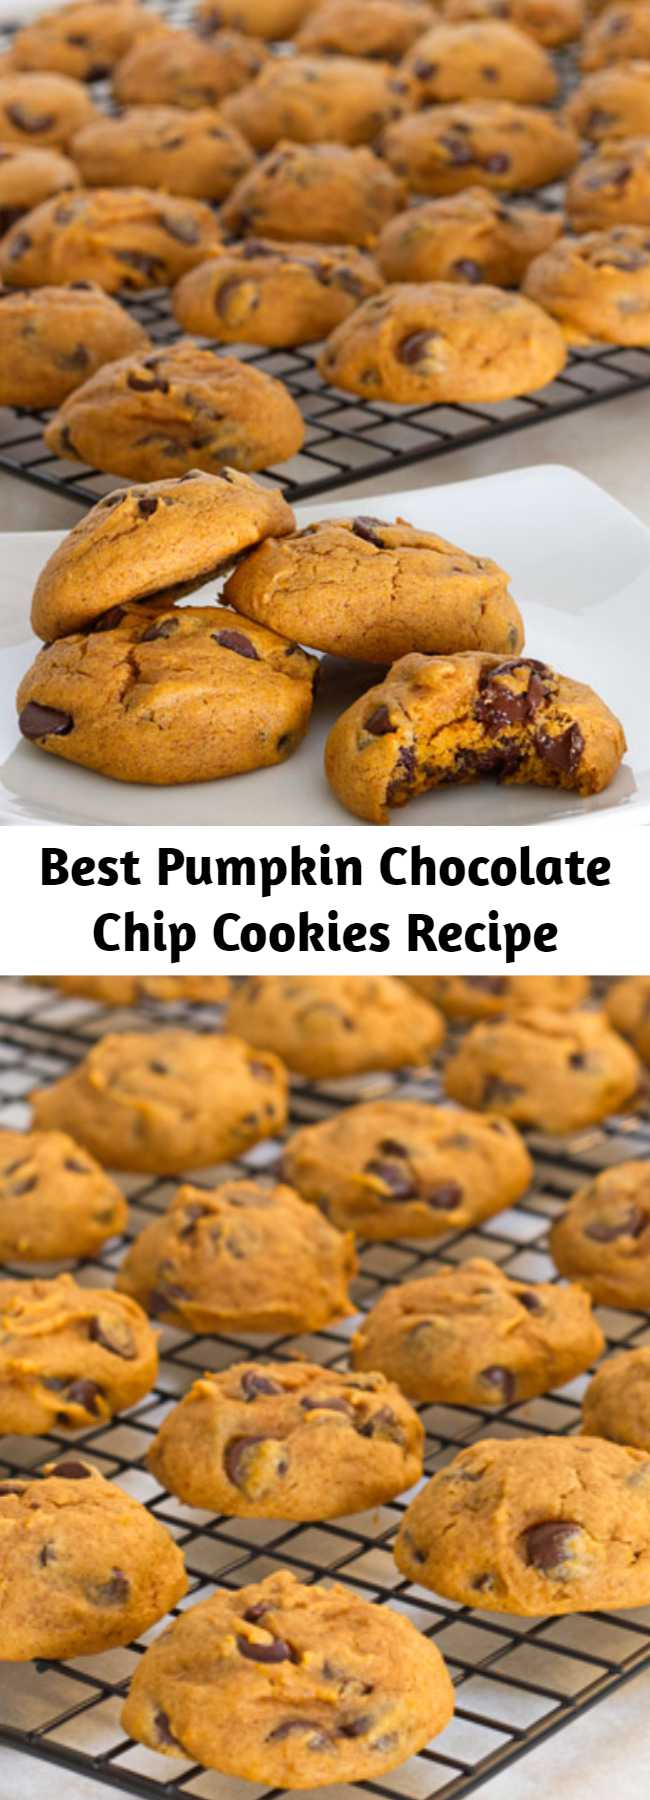 Best Pumpkin Chocolate Chip Cookies Recipe - These pumpkin chocolate chip cookies are the essential fall cookie! Chewy and cake-like, they're sure to be a hit at your next tailgate or fall party!